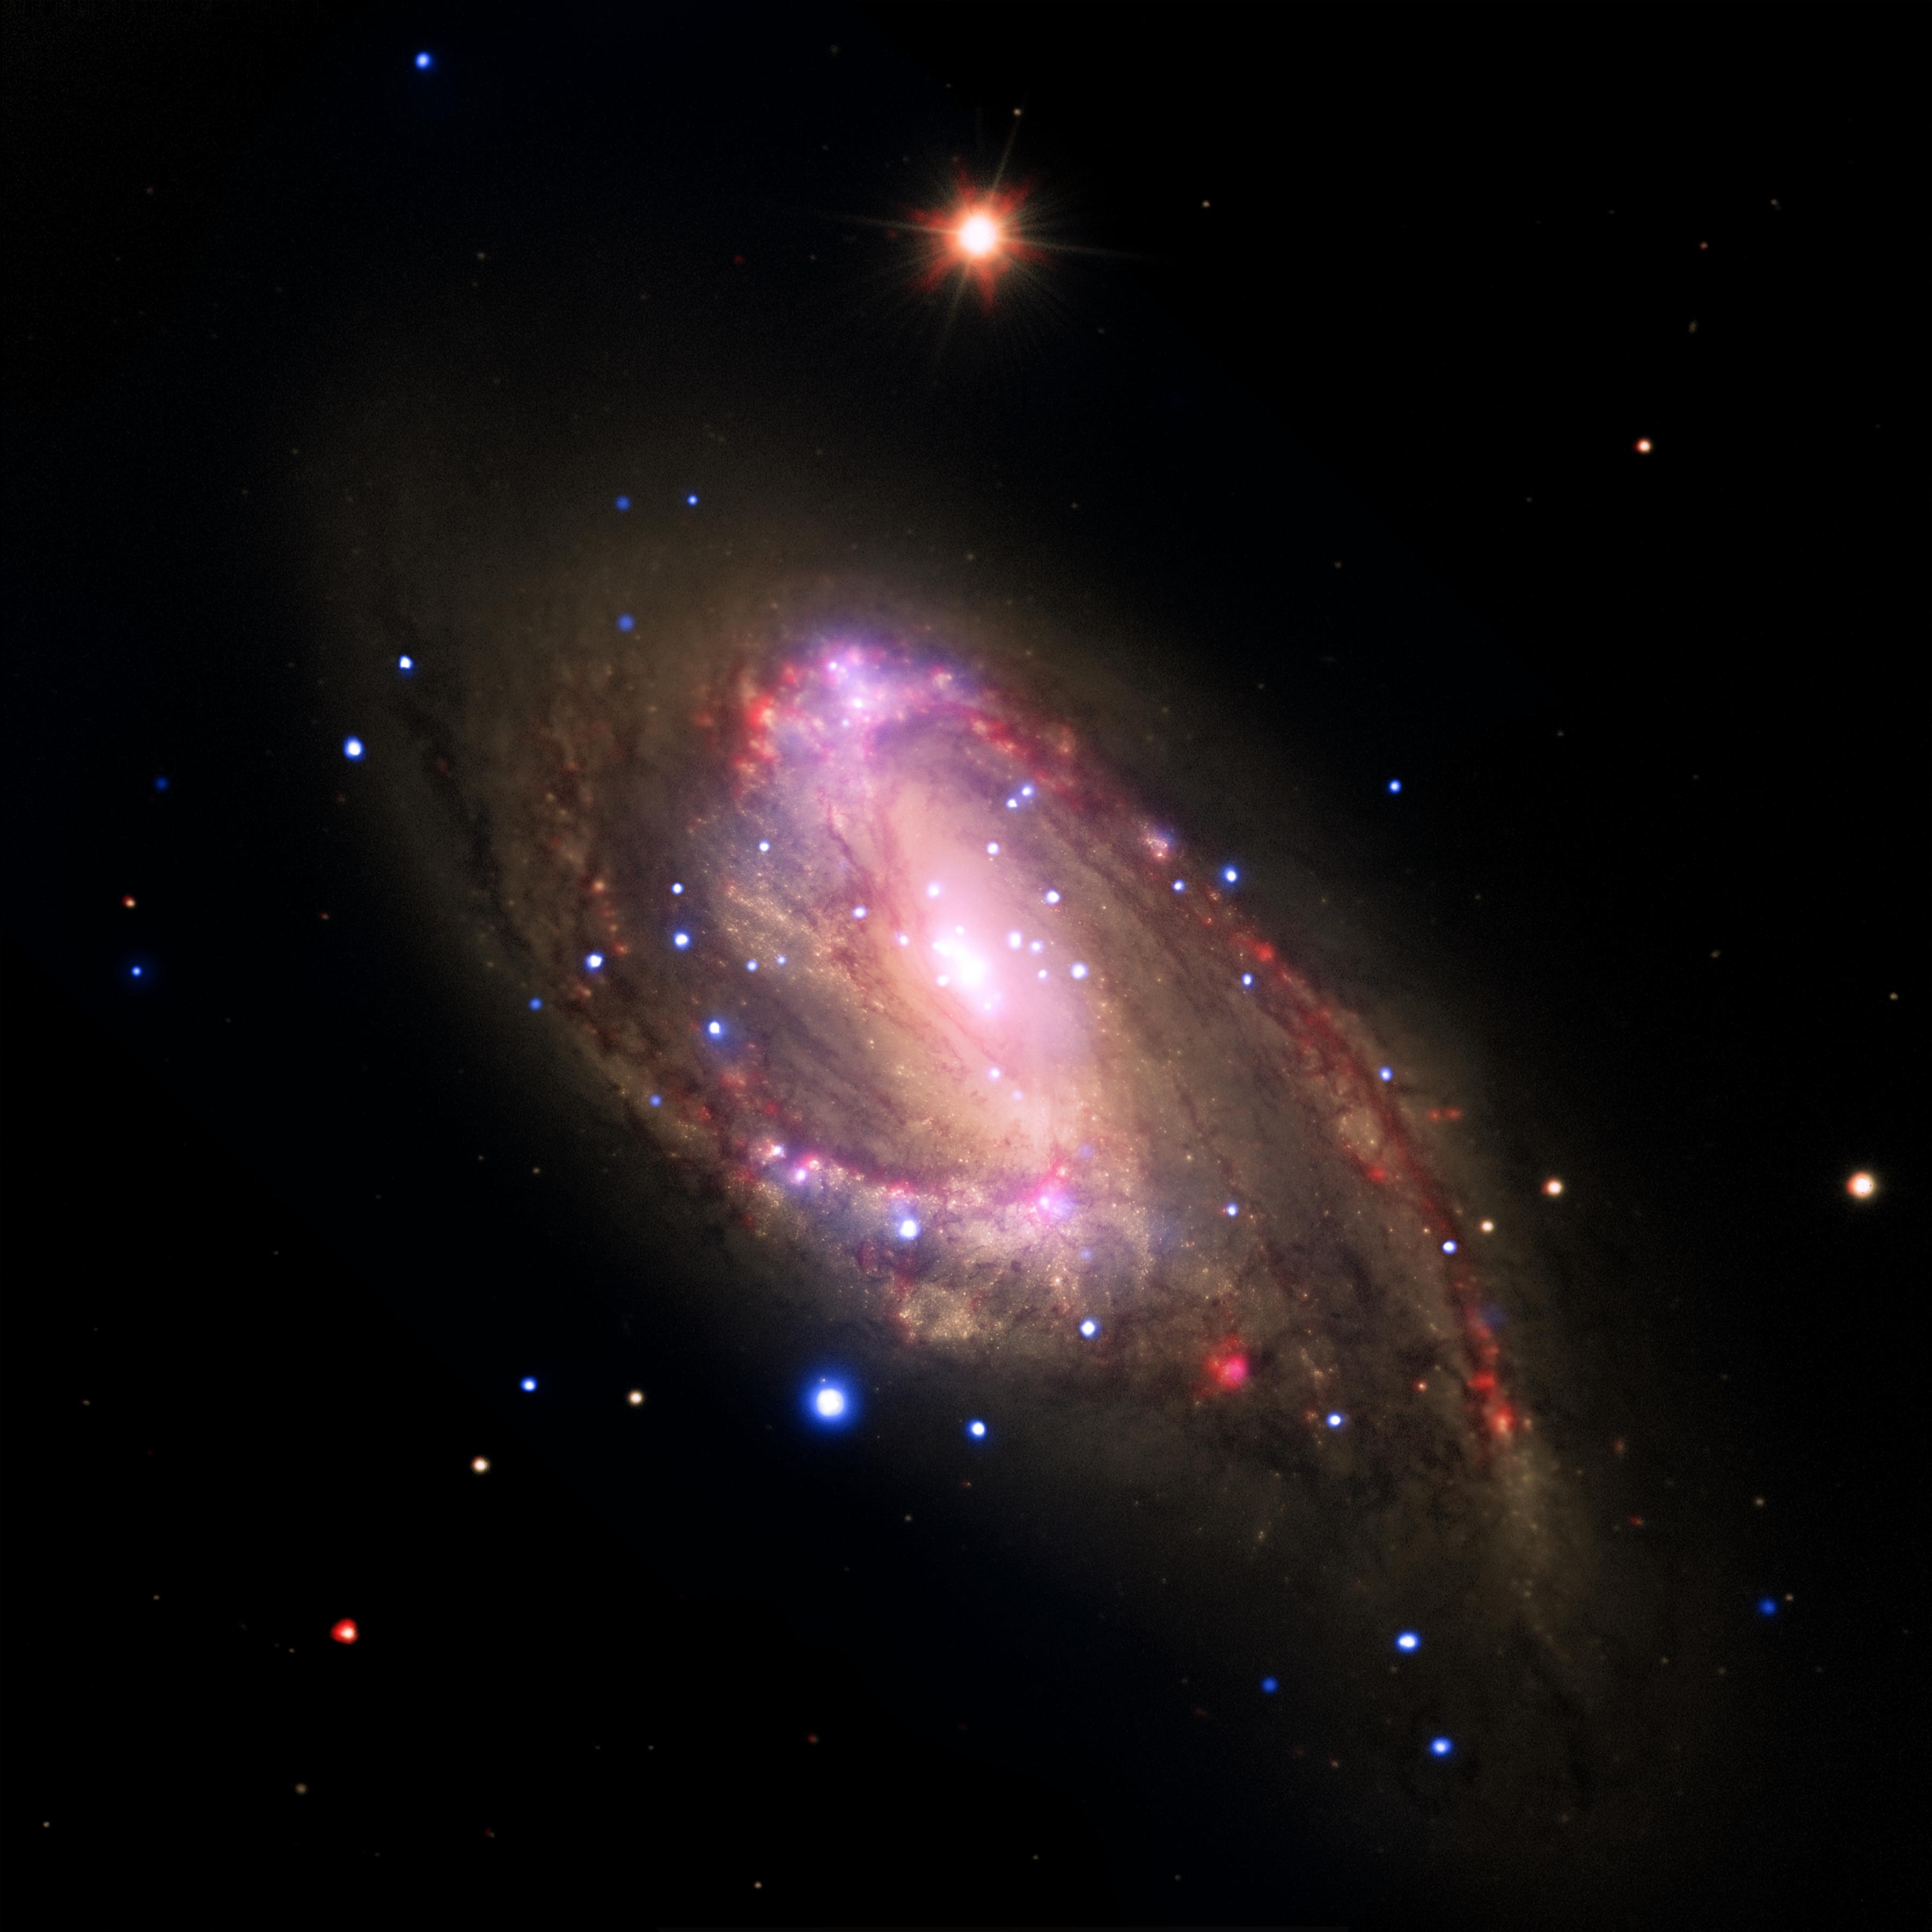 Space Images | NGC 3627: Revealing Hidden Black Holes